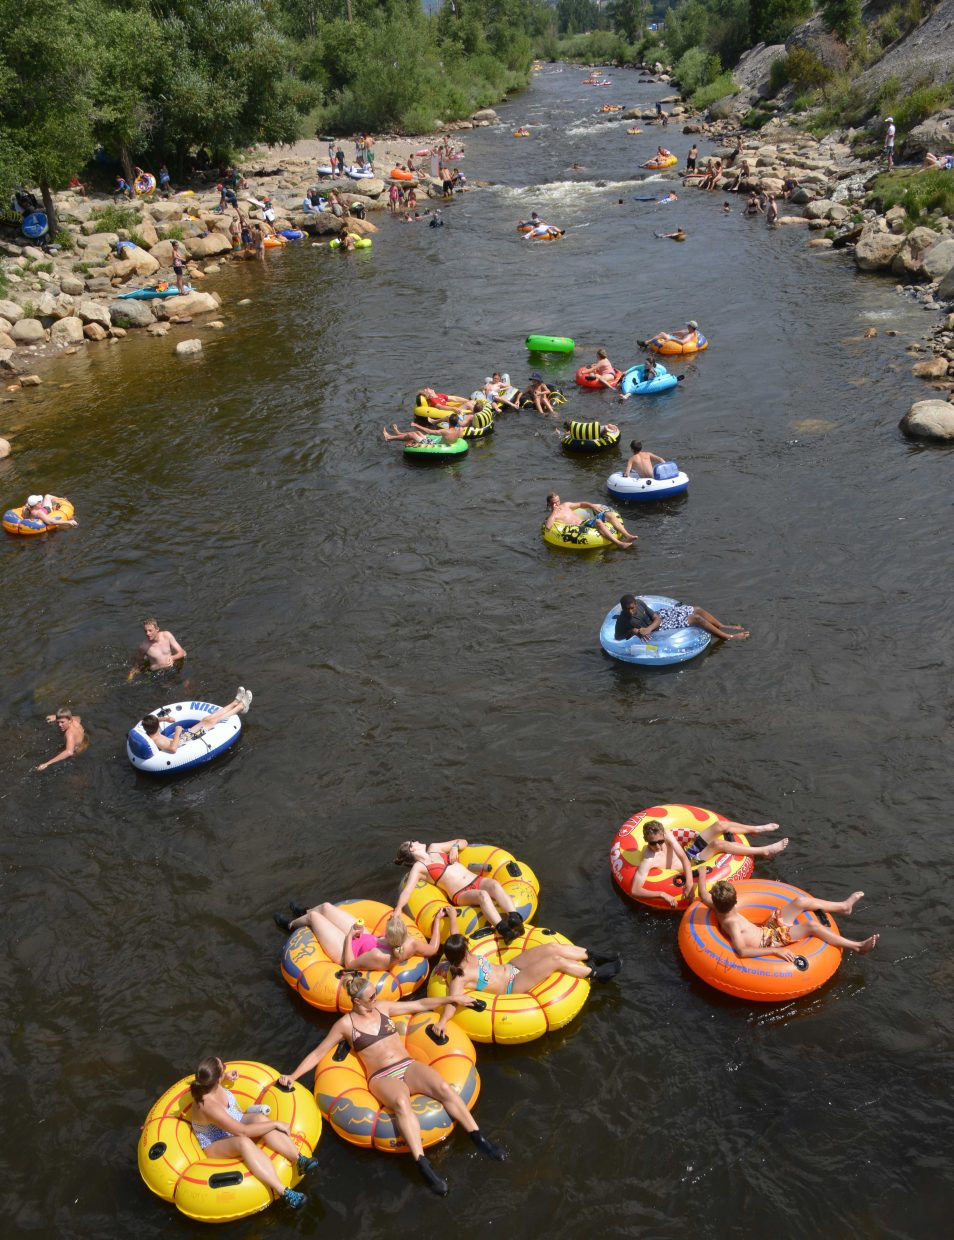 Tubers ride down the Yampa River through Charlie's Hole in downtown Steamboat Springs on a busy Sunday.